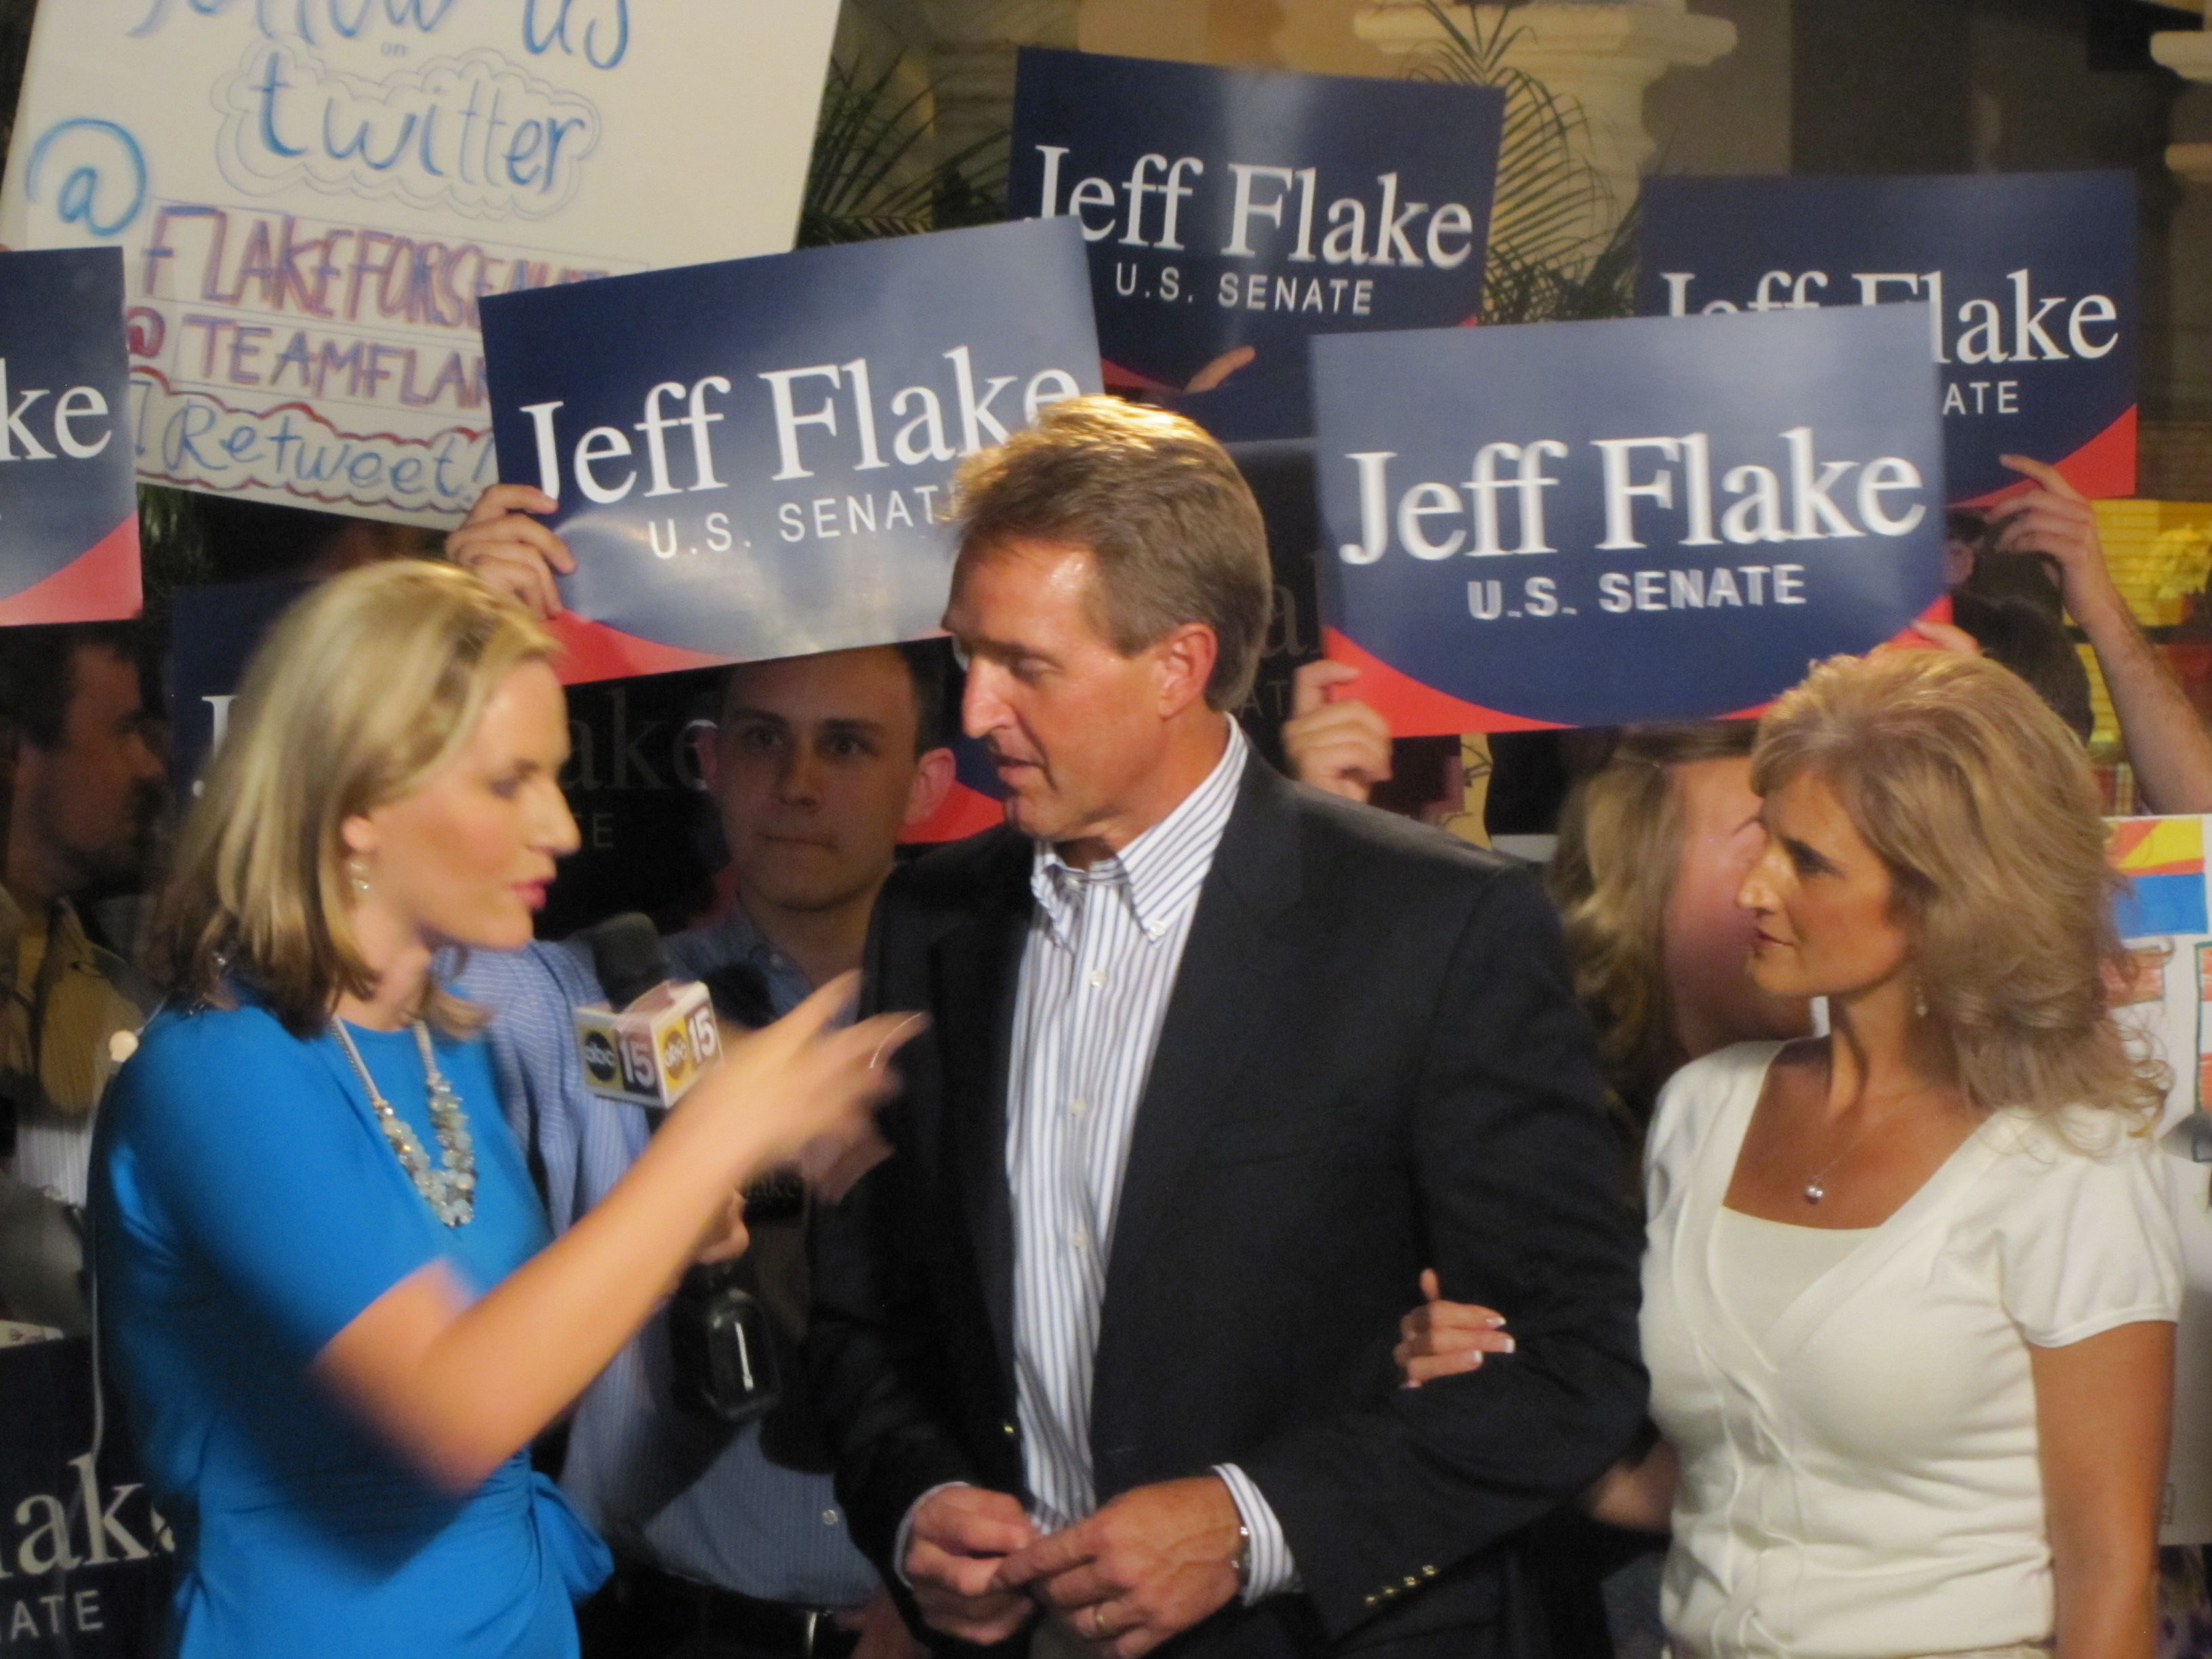 Jeff Flake interview